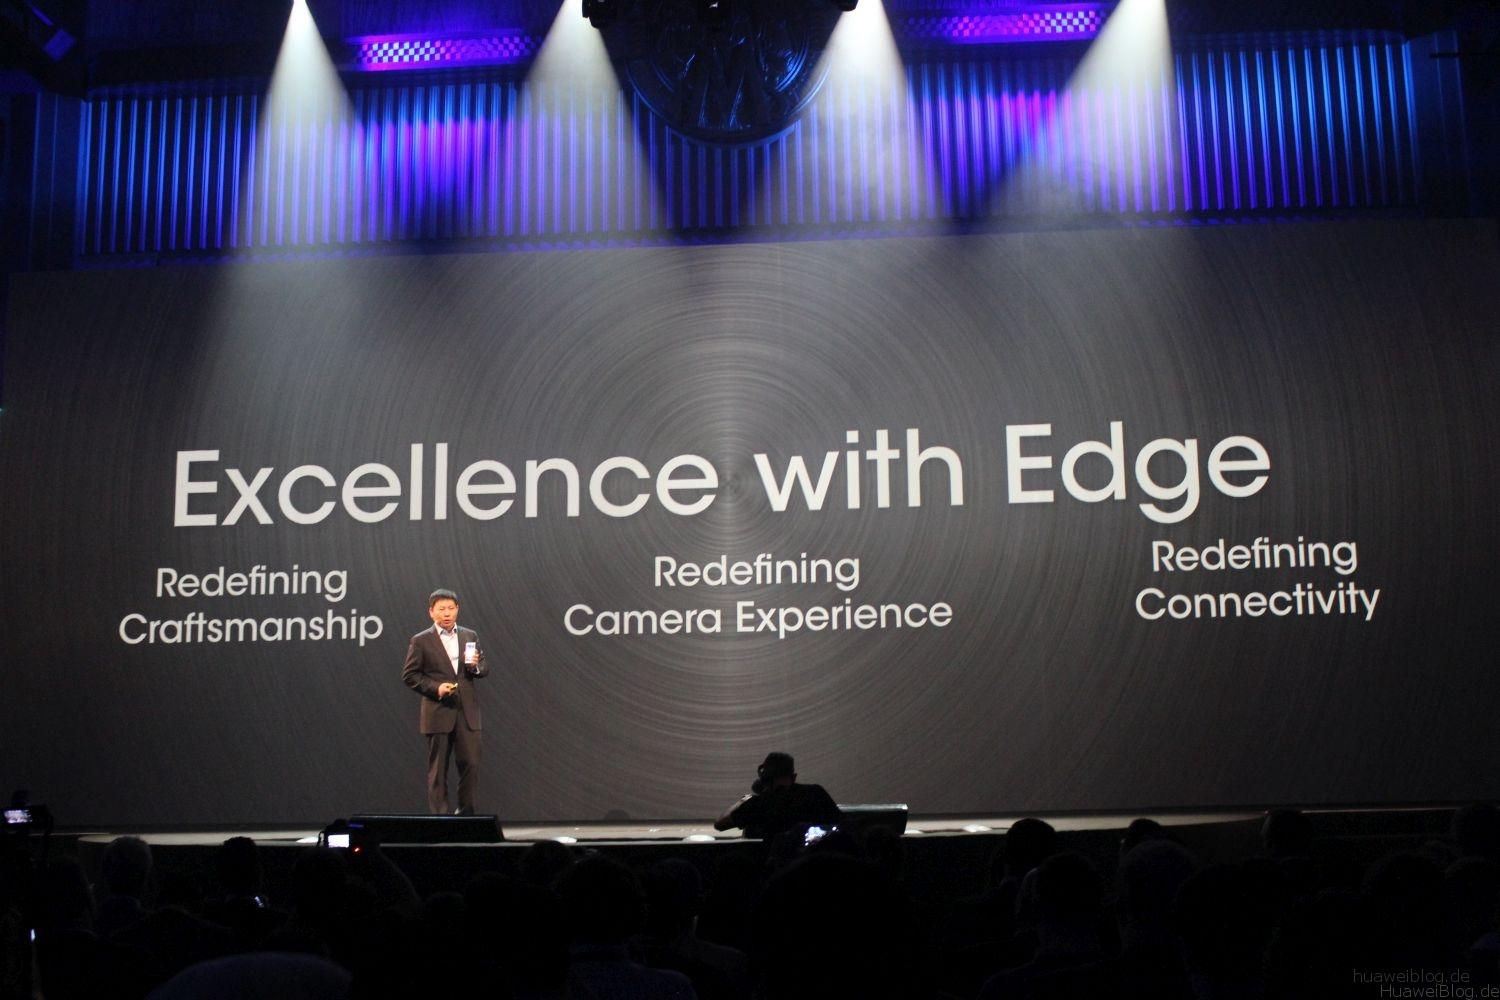 Excellence with Edge